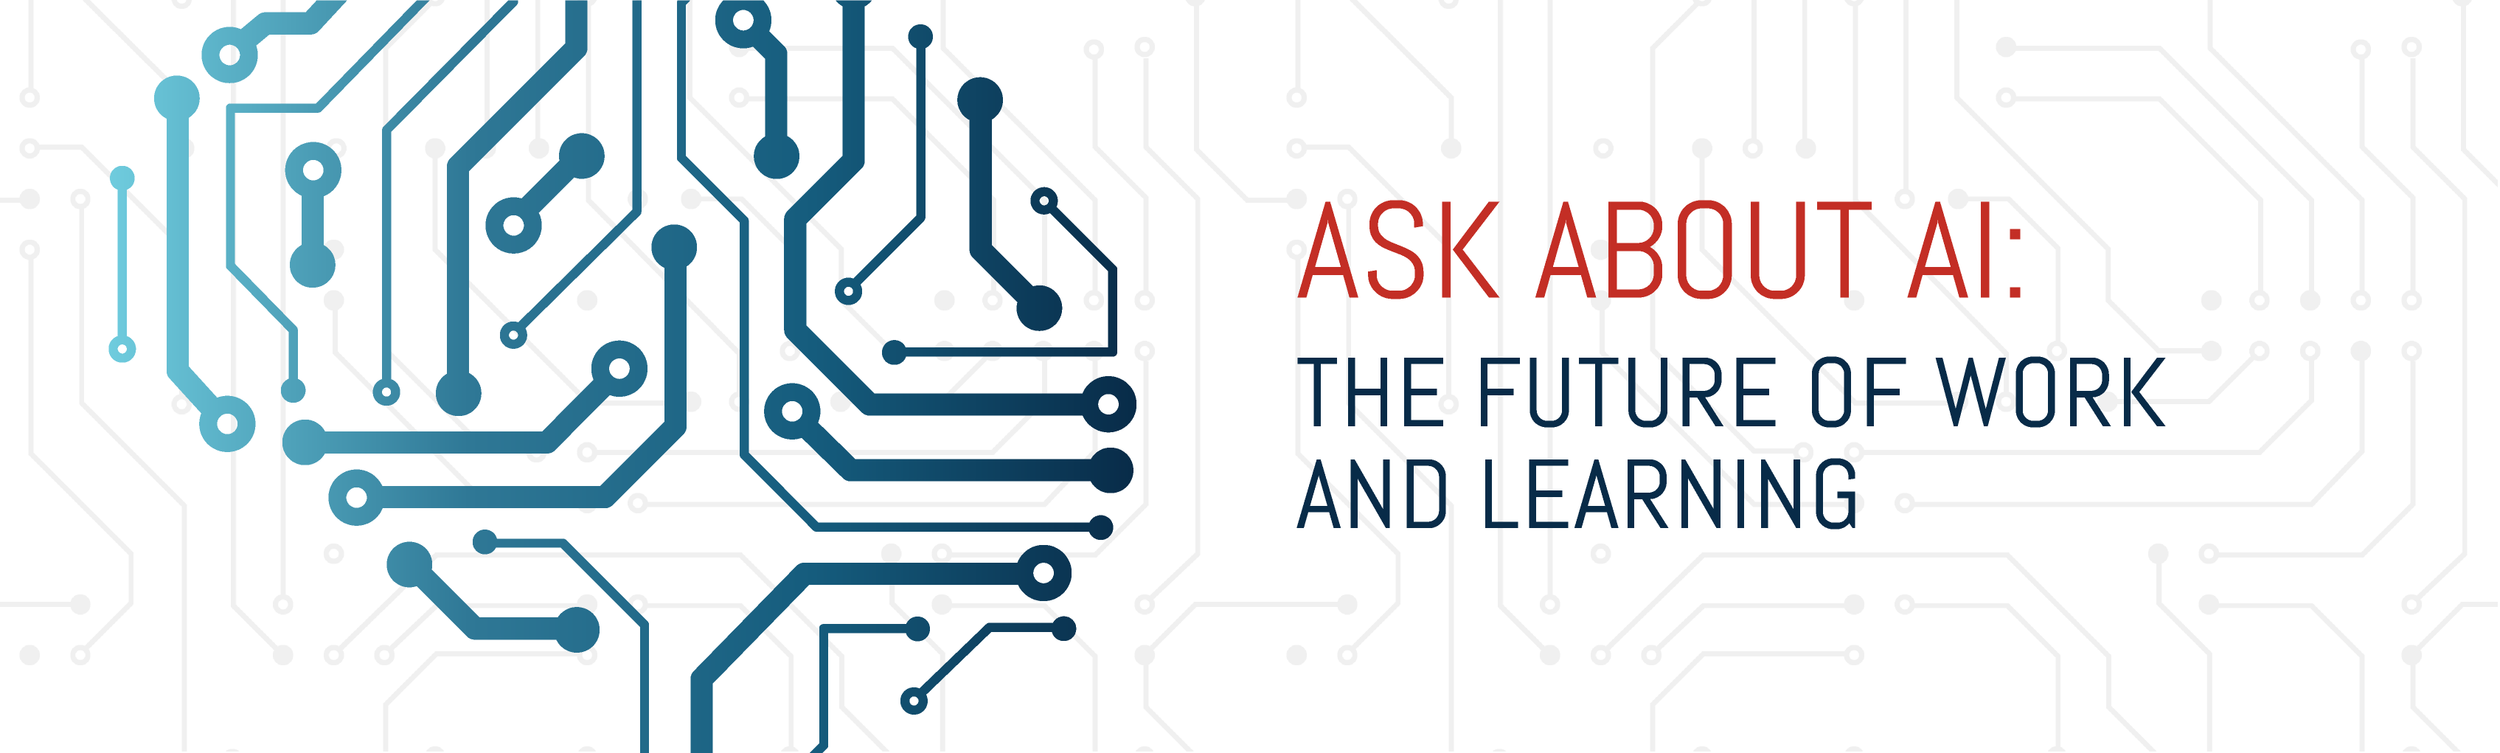 ask-about-ai-banner-3390x1021.png